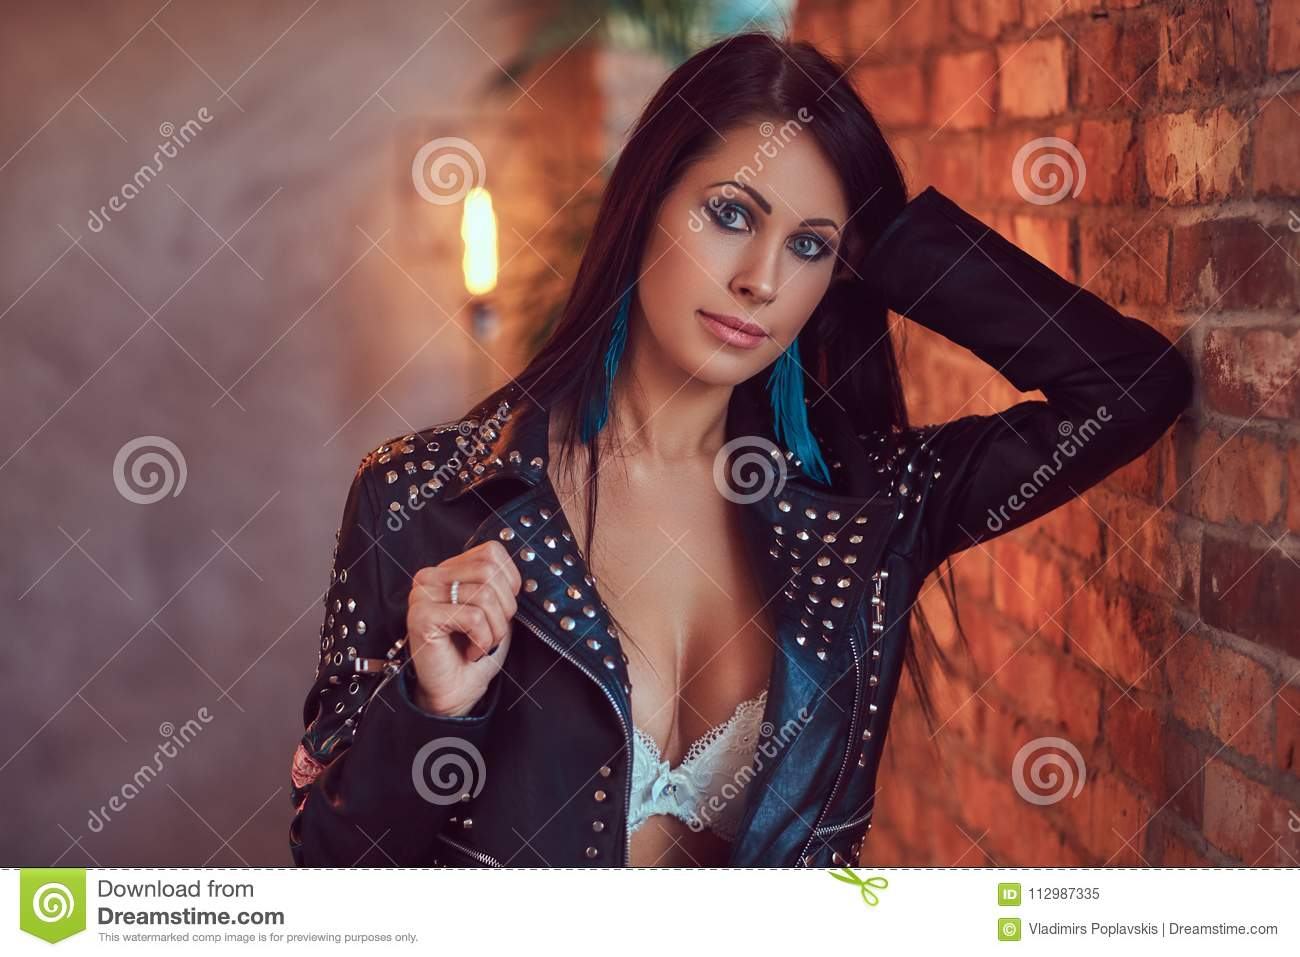 Portrait of a sensual brunette posing in underwear and stylish leather jacket leaning against a brick wall.